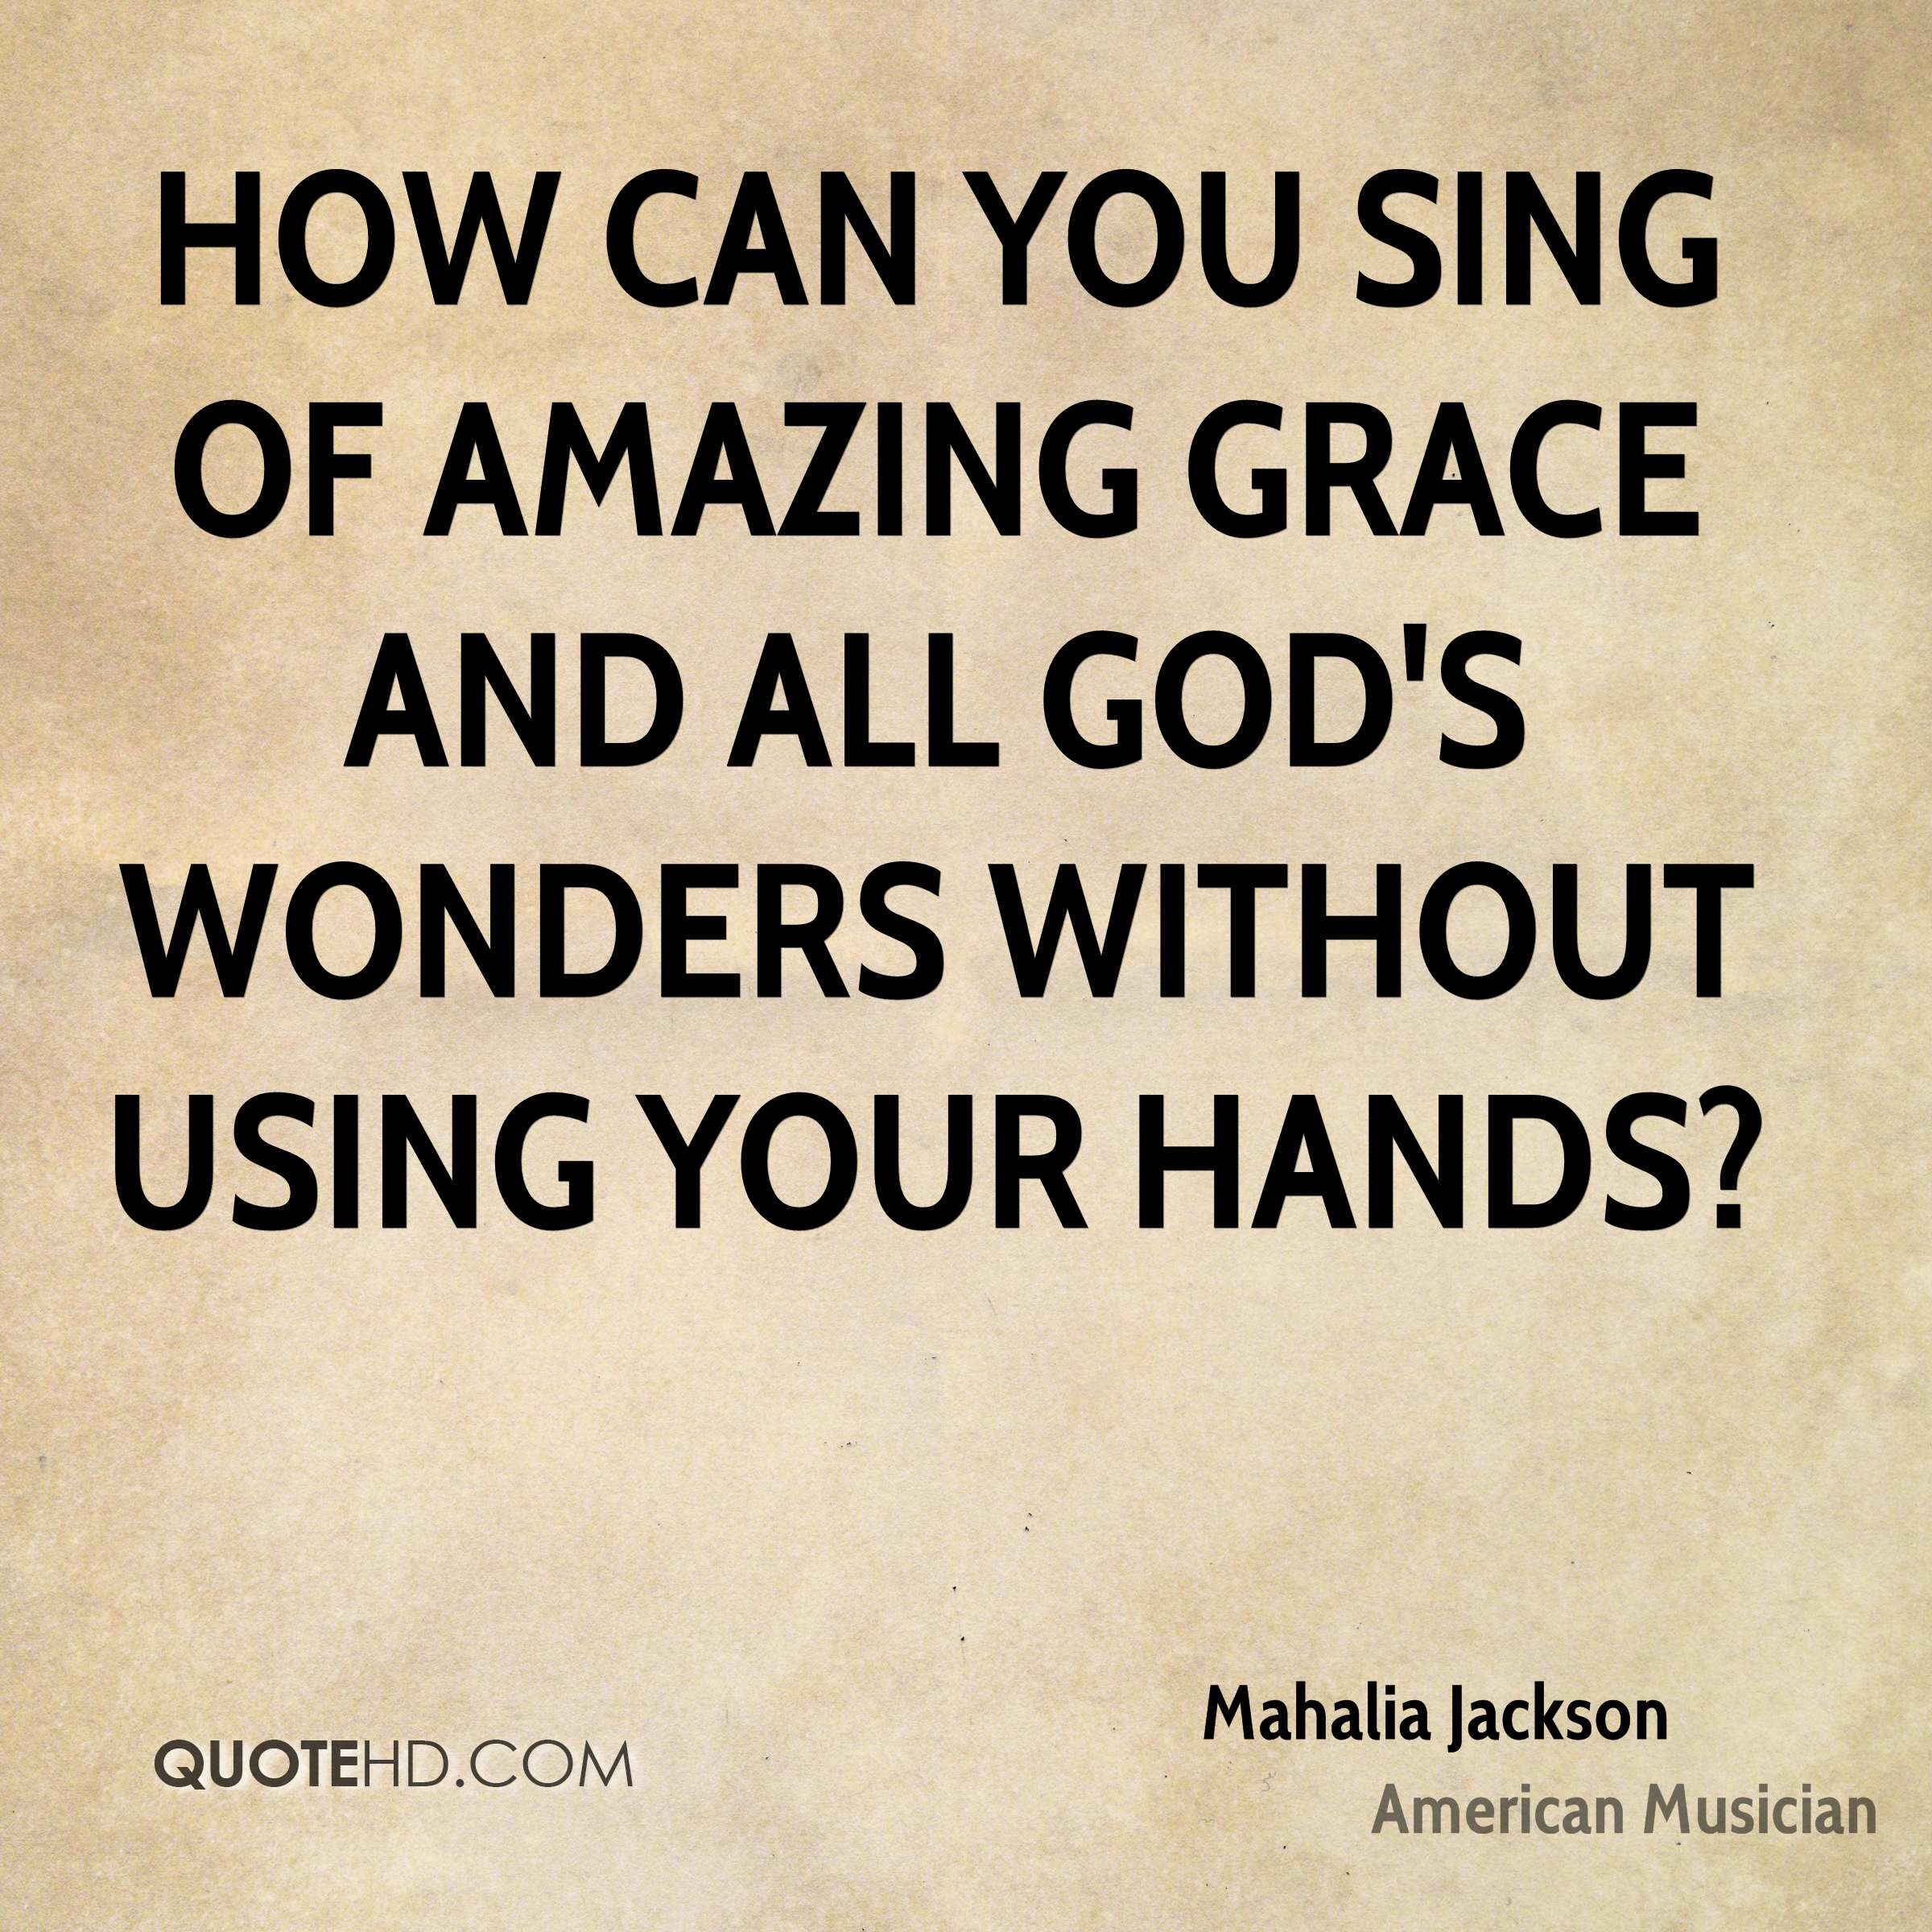 How can you sing of amazing grace and all God's wonders without using your hands?